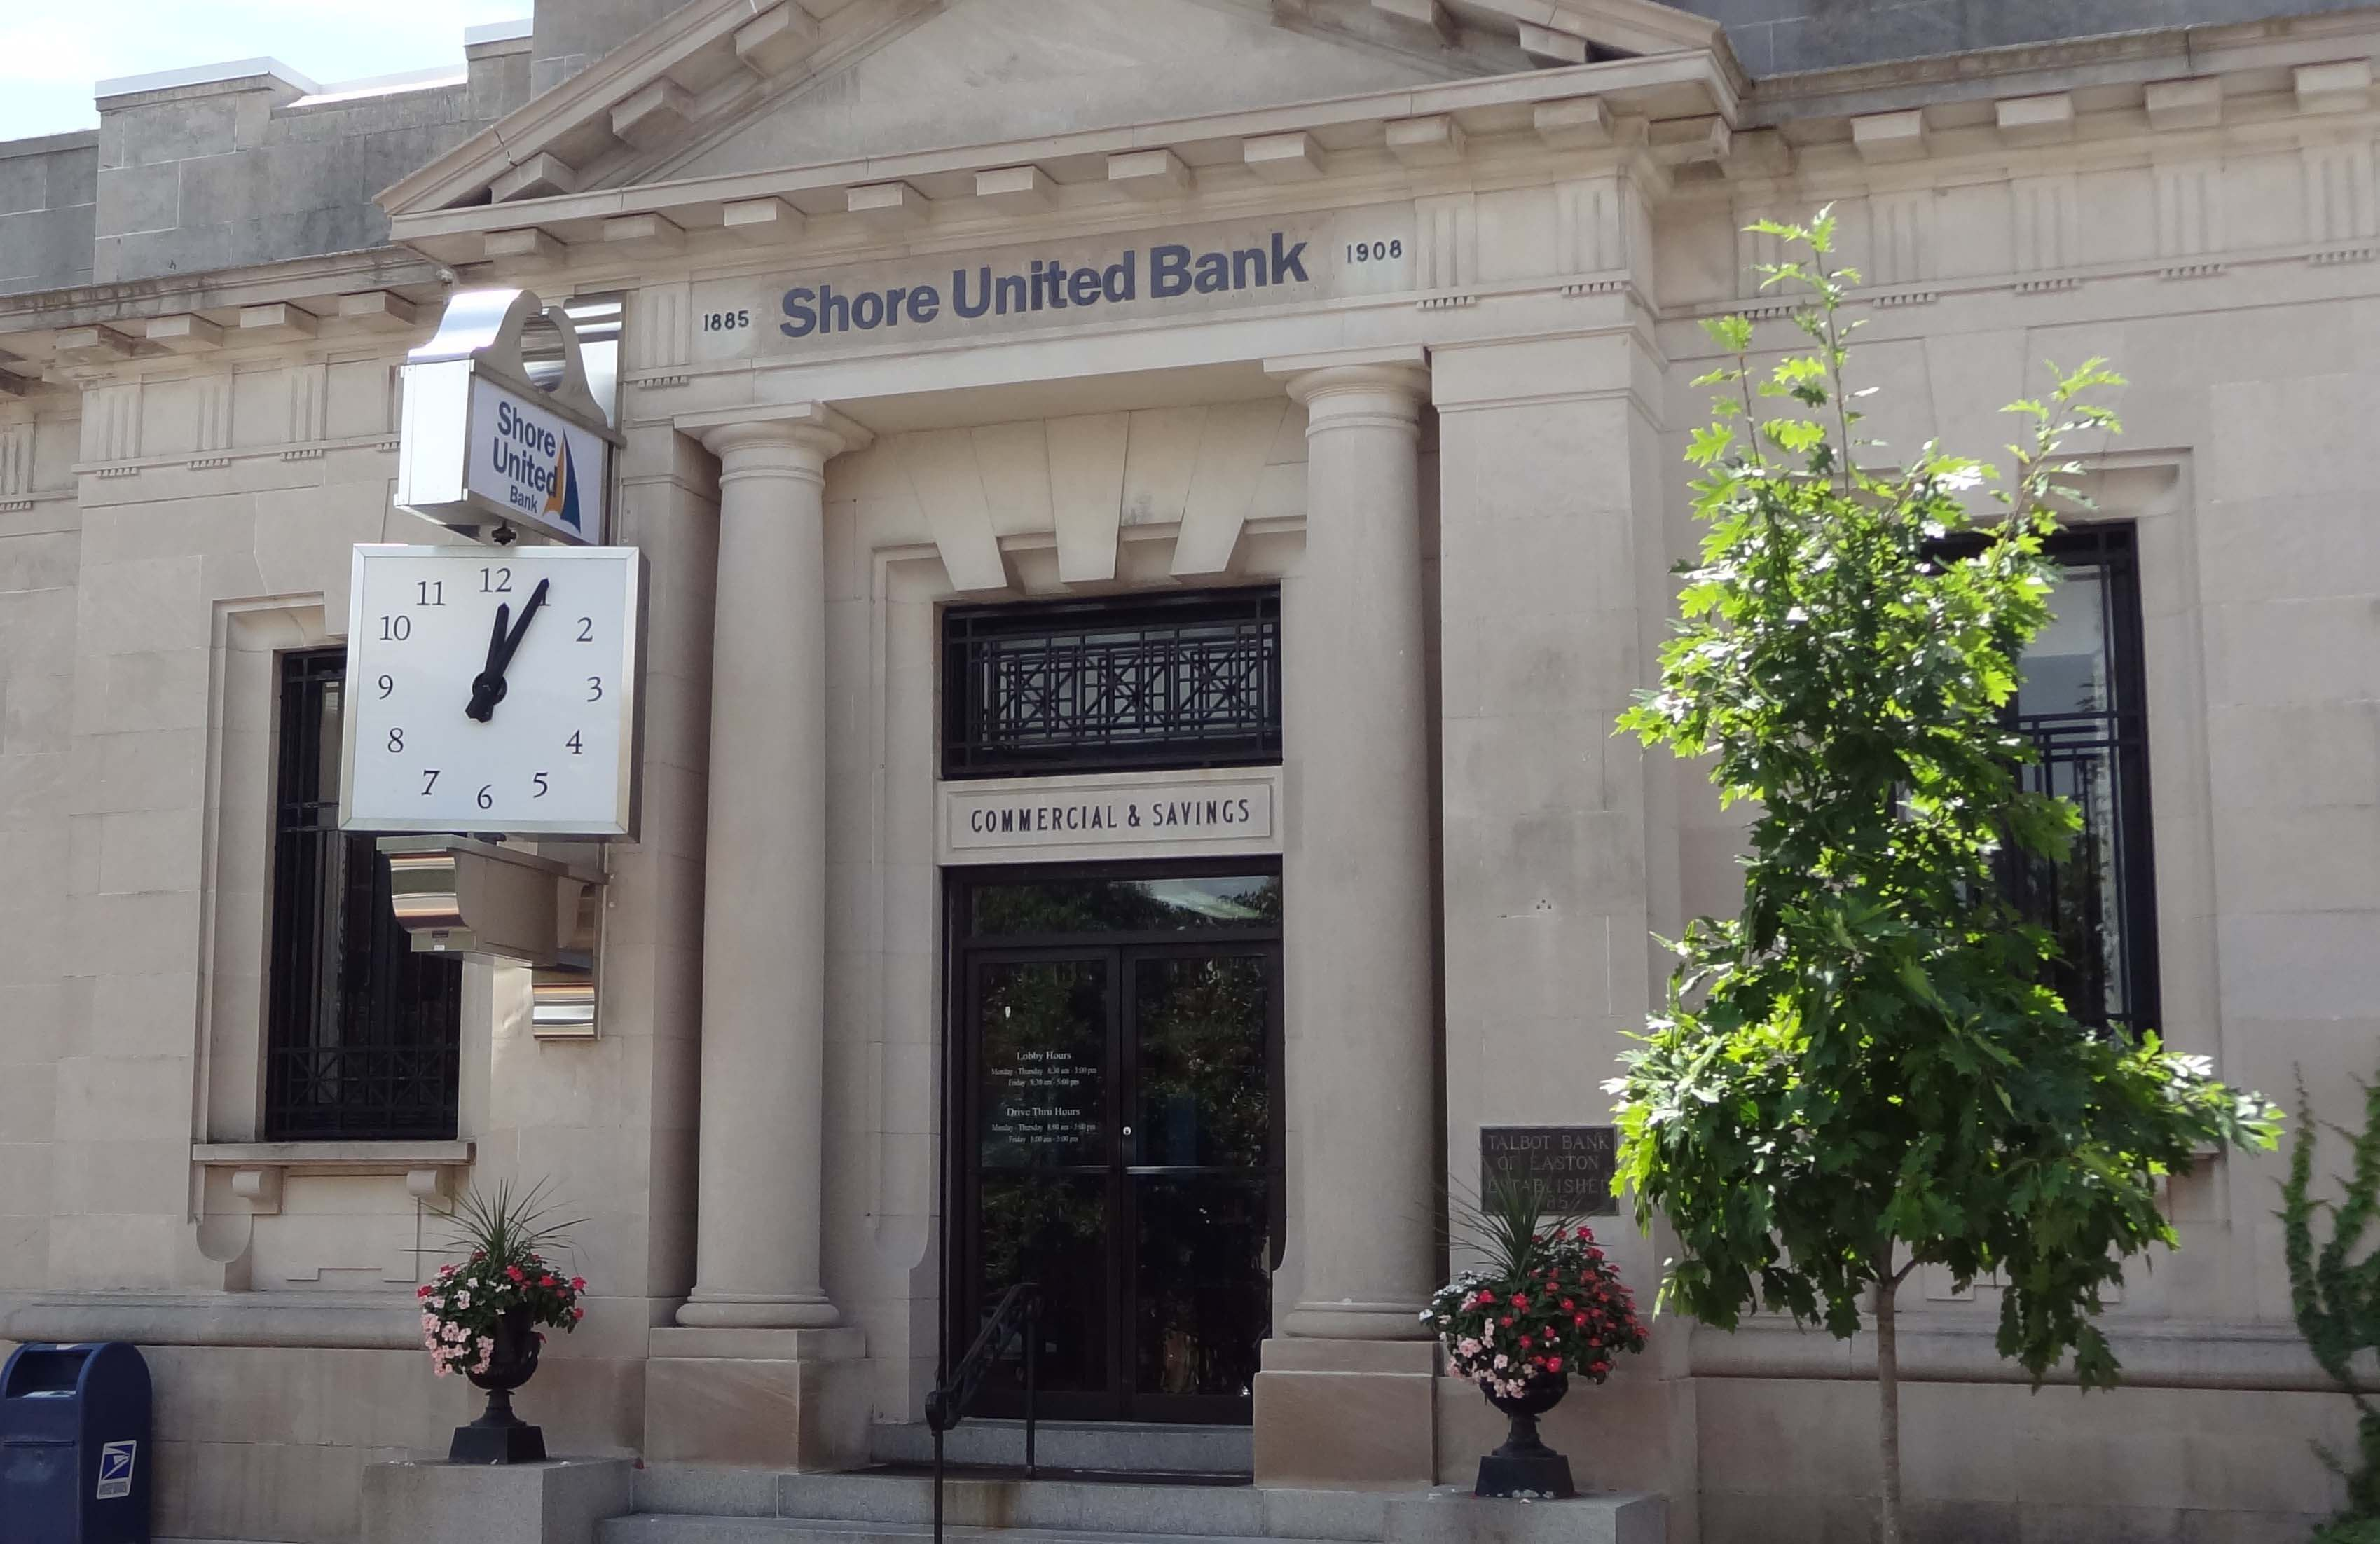 Shore United Bank branch on Dover Street in Easton, MD